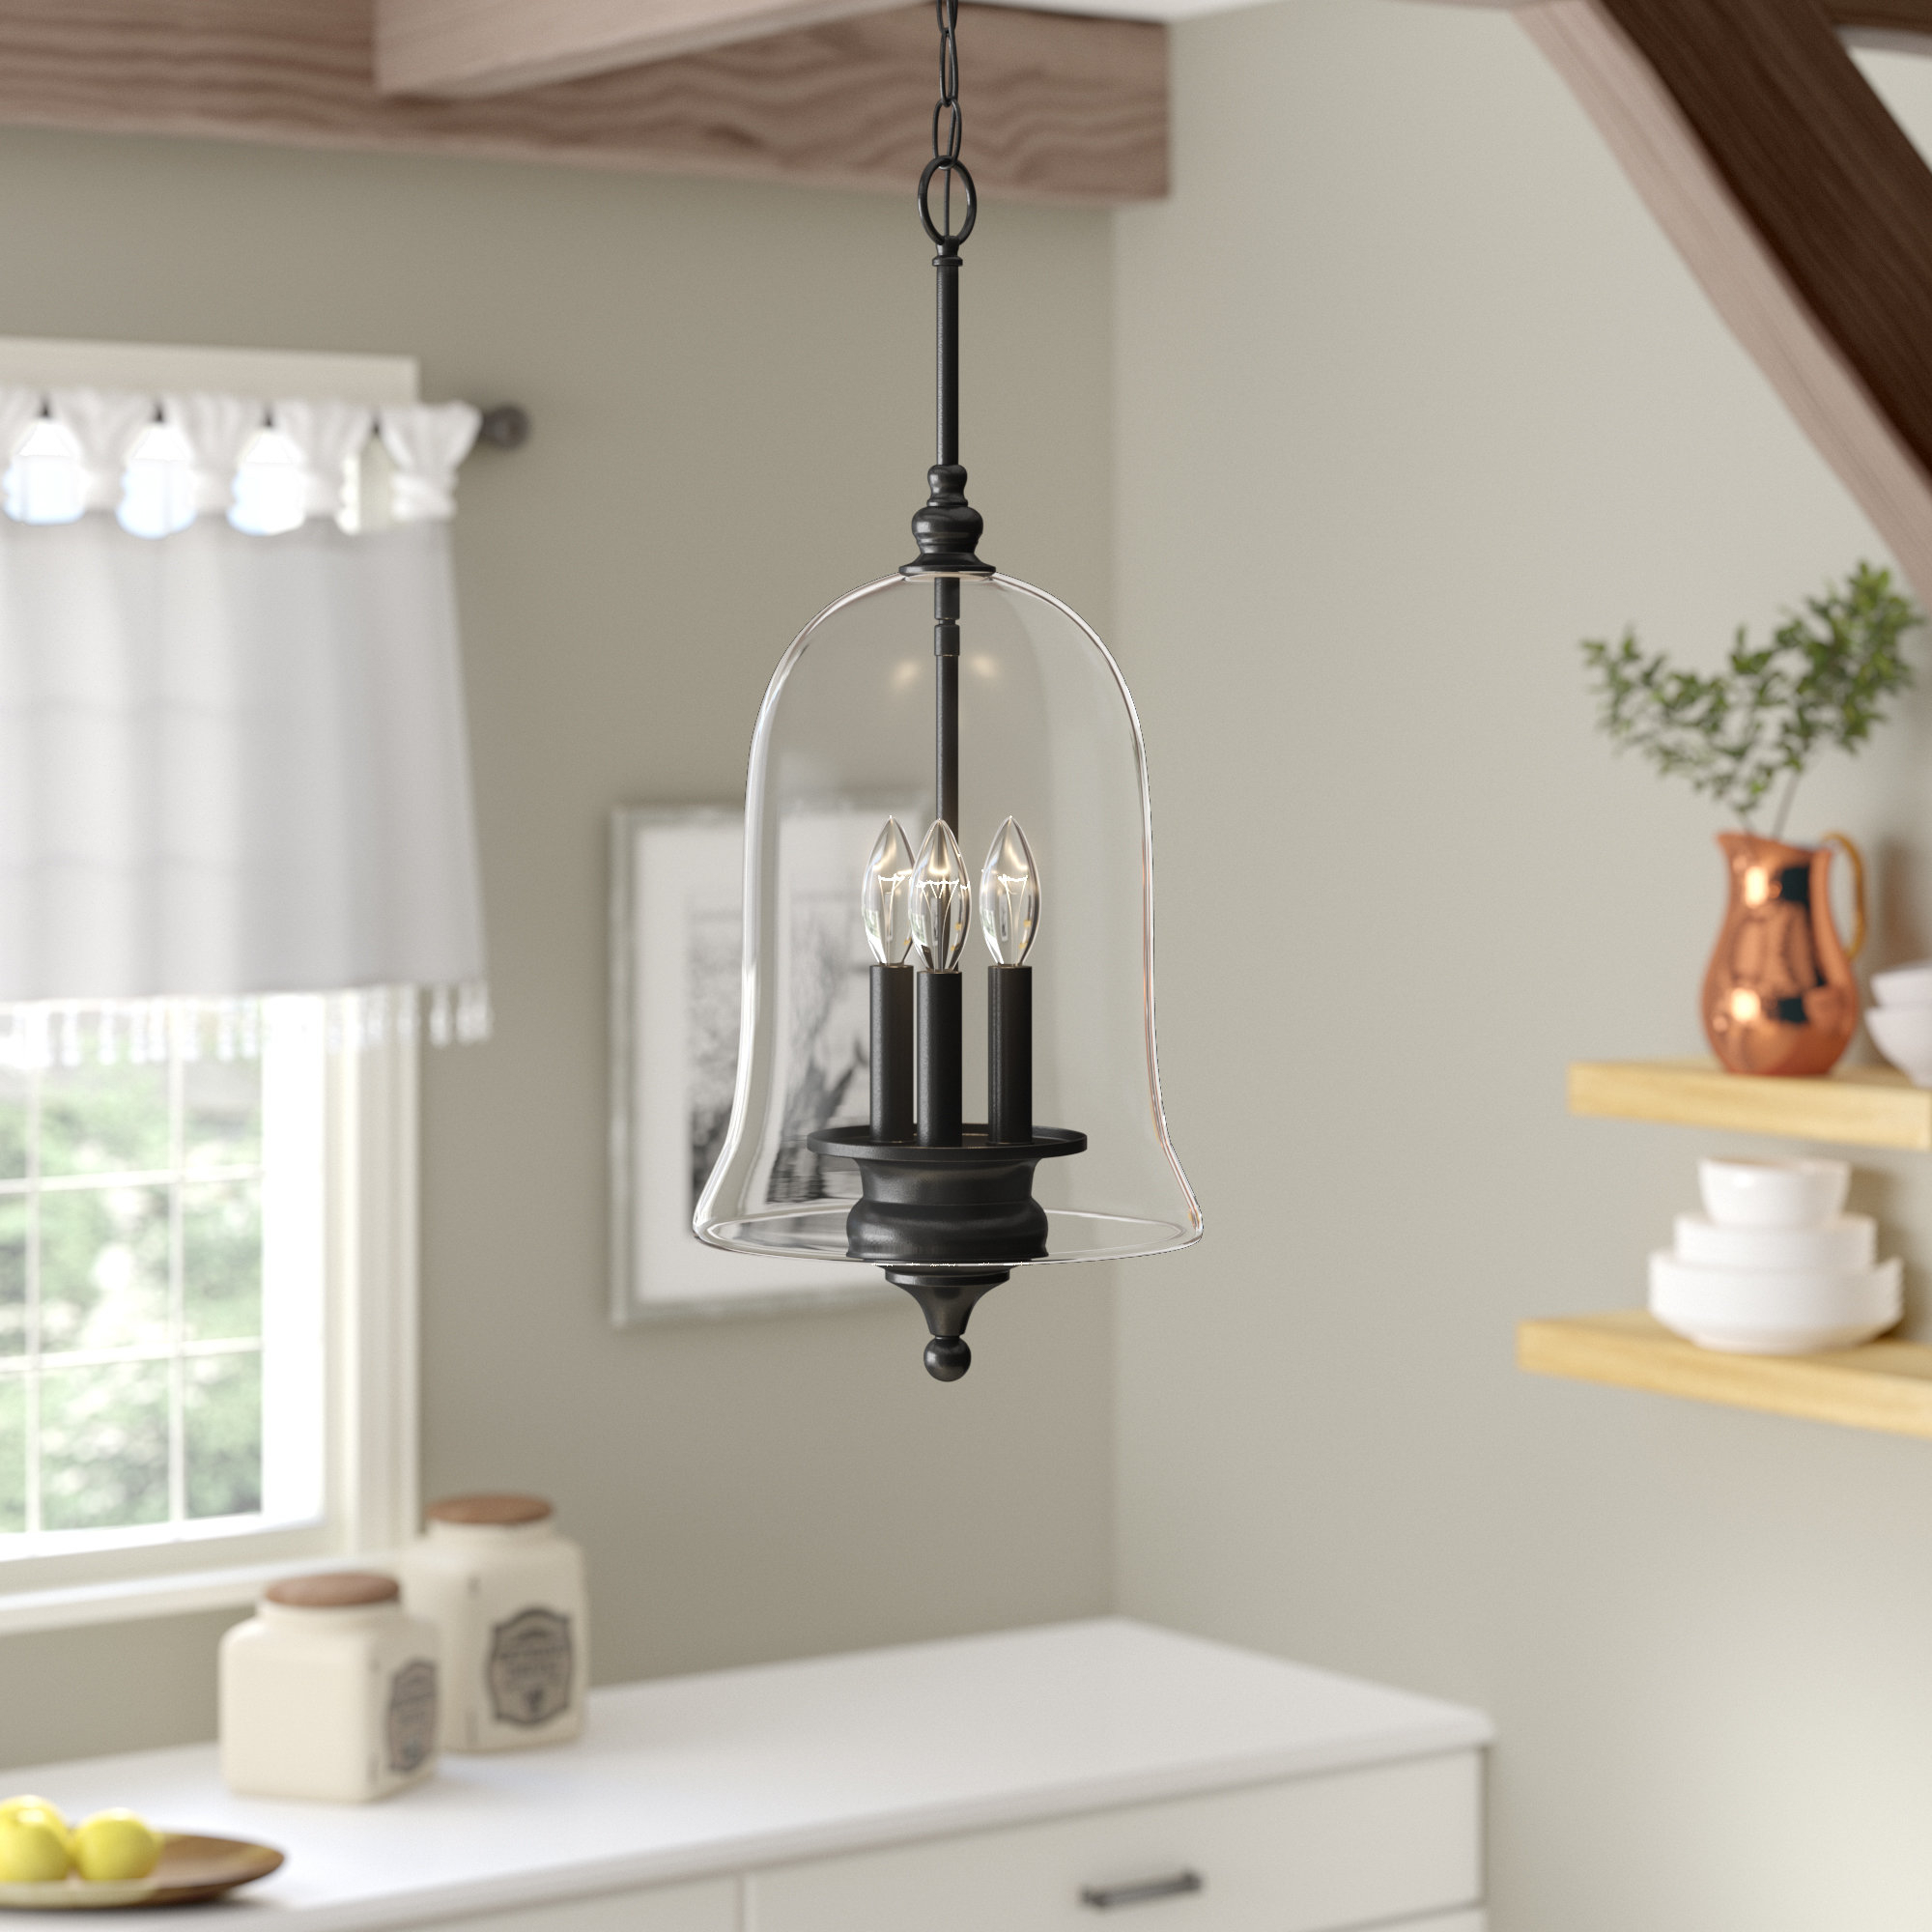 Gracie Oaks Youngberg 3 Light Single Bell Pendant & Reviews Regarding Most Up To Date Dirksen 3 Light Single Cylinder Chandeliers (View 17 of 25)